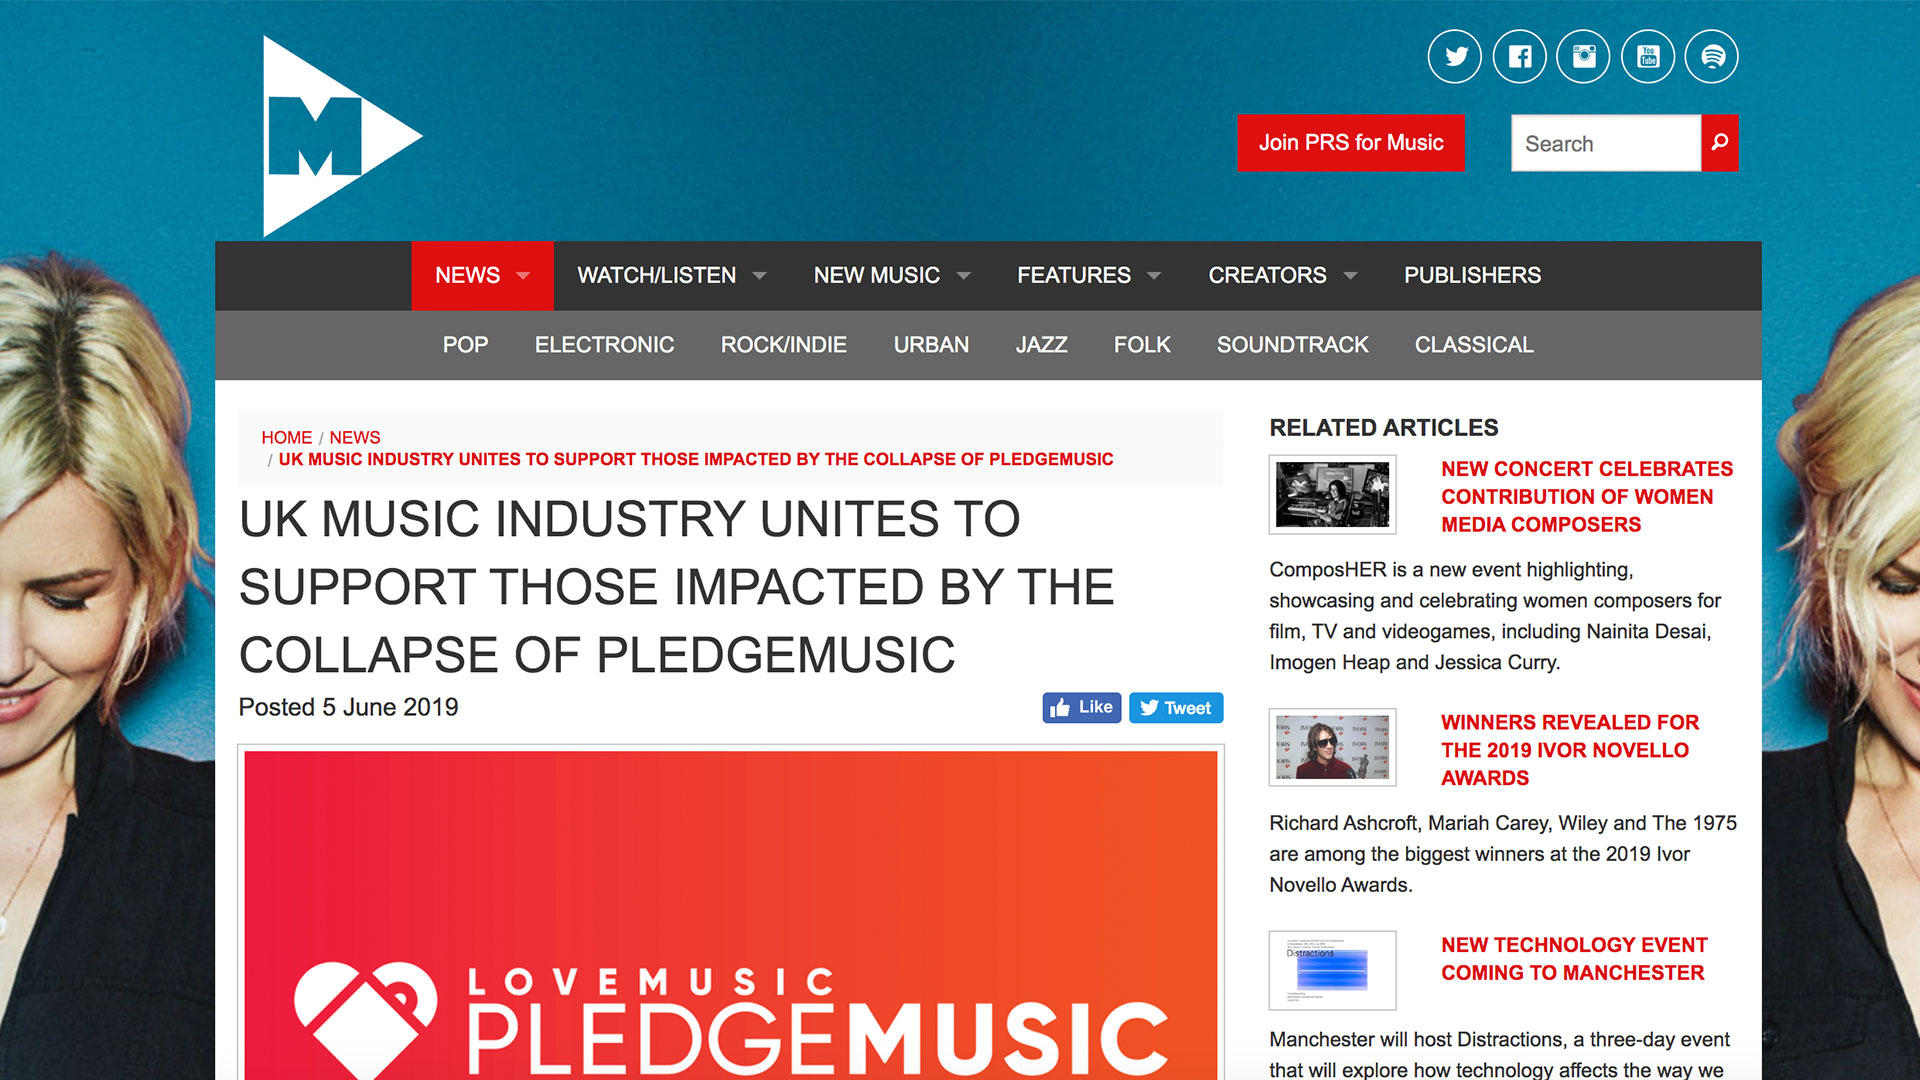 Fairness Rocks News UK MUSIC INDUSTRY UNITES TO SUPPORT THOSE IMPACTED BY THE COLLAPSE OF PLEDGEMUSIC